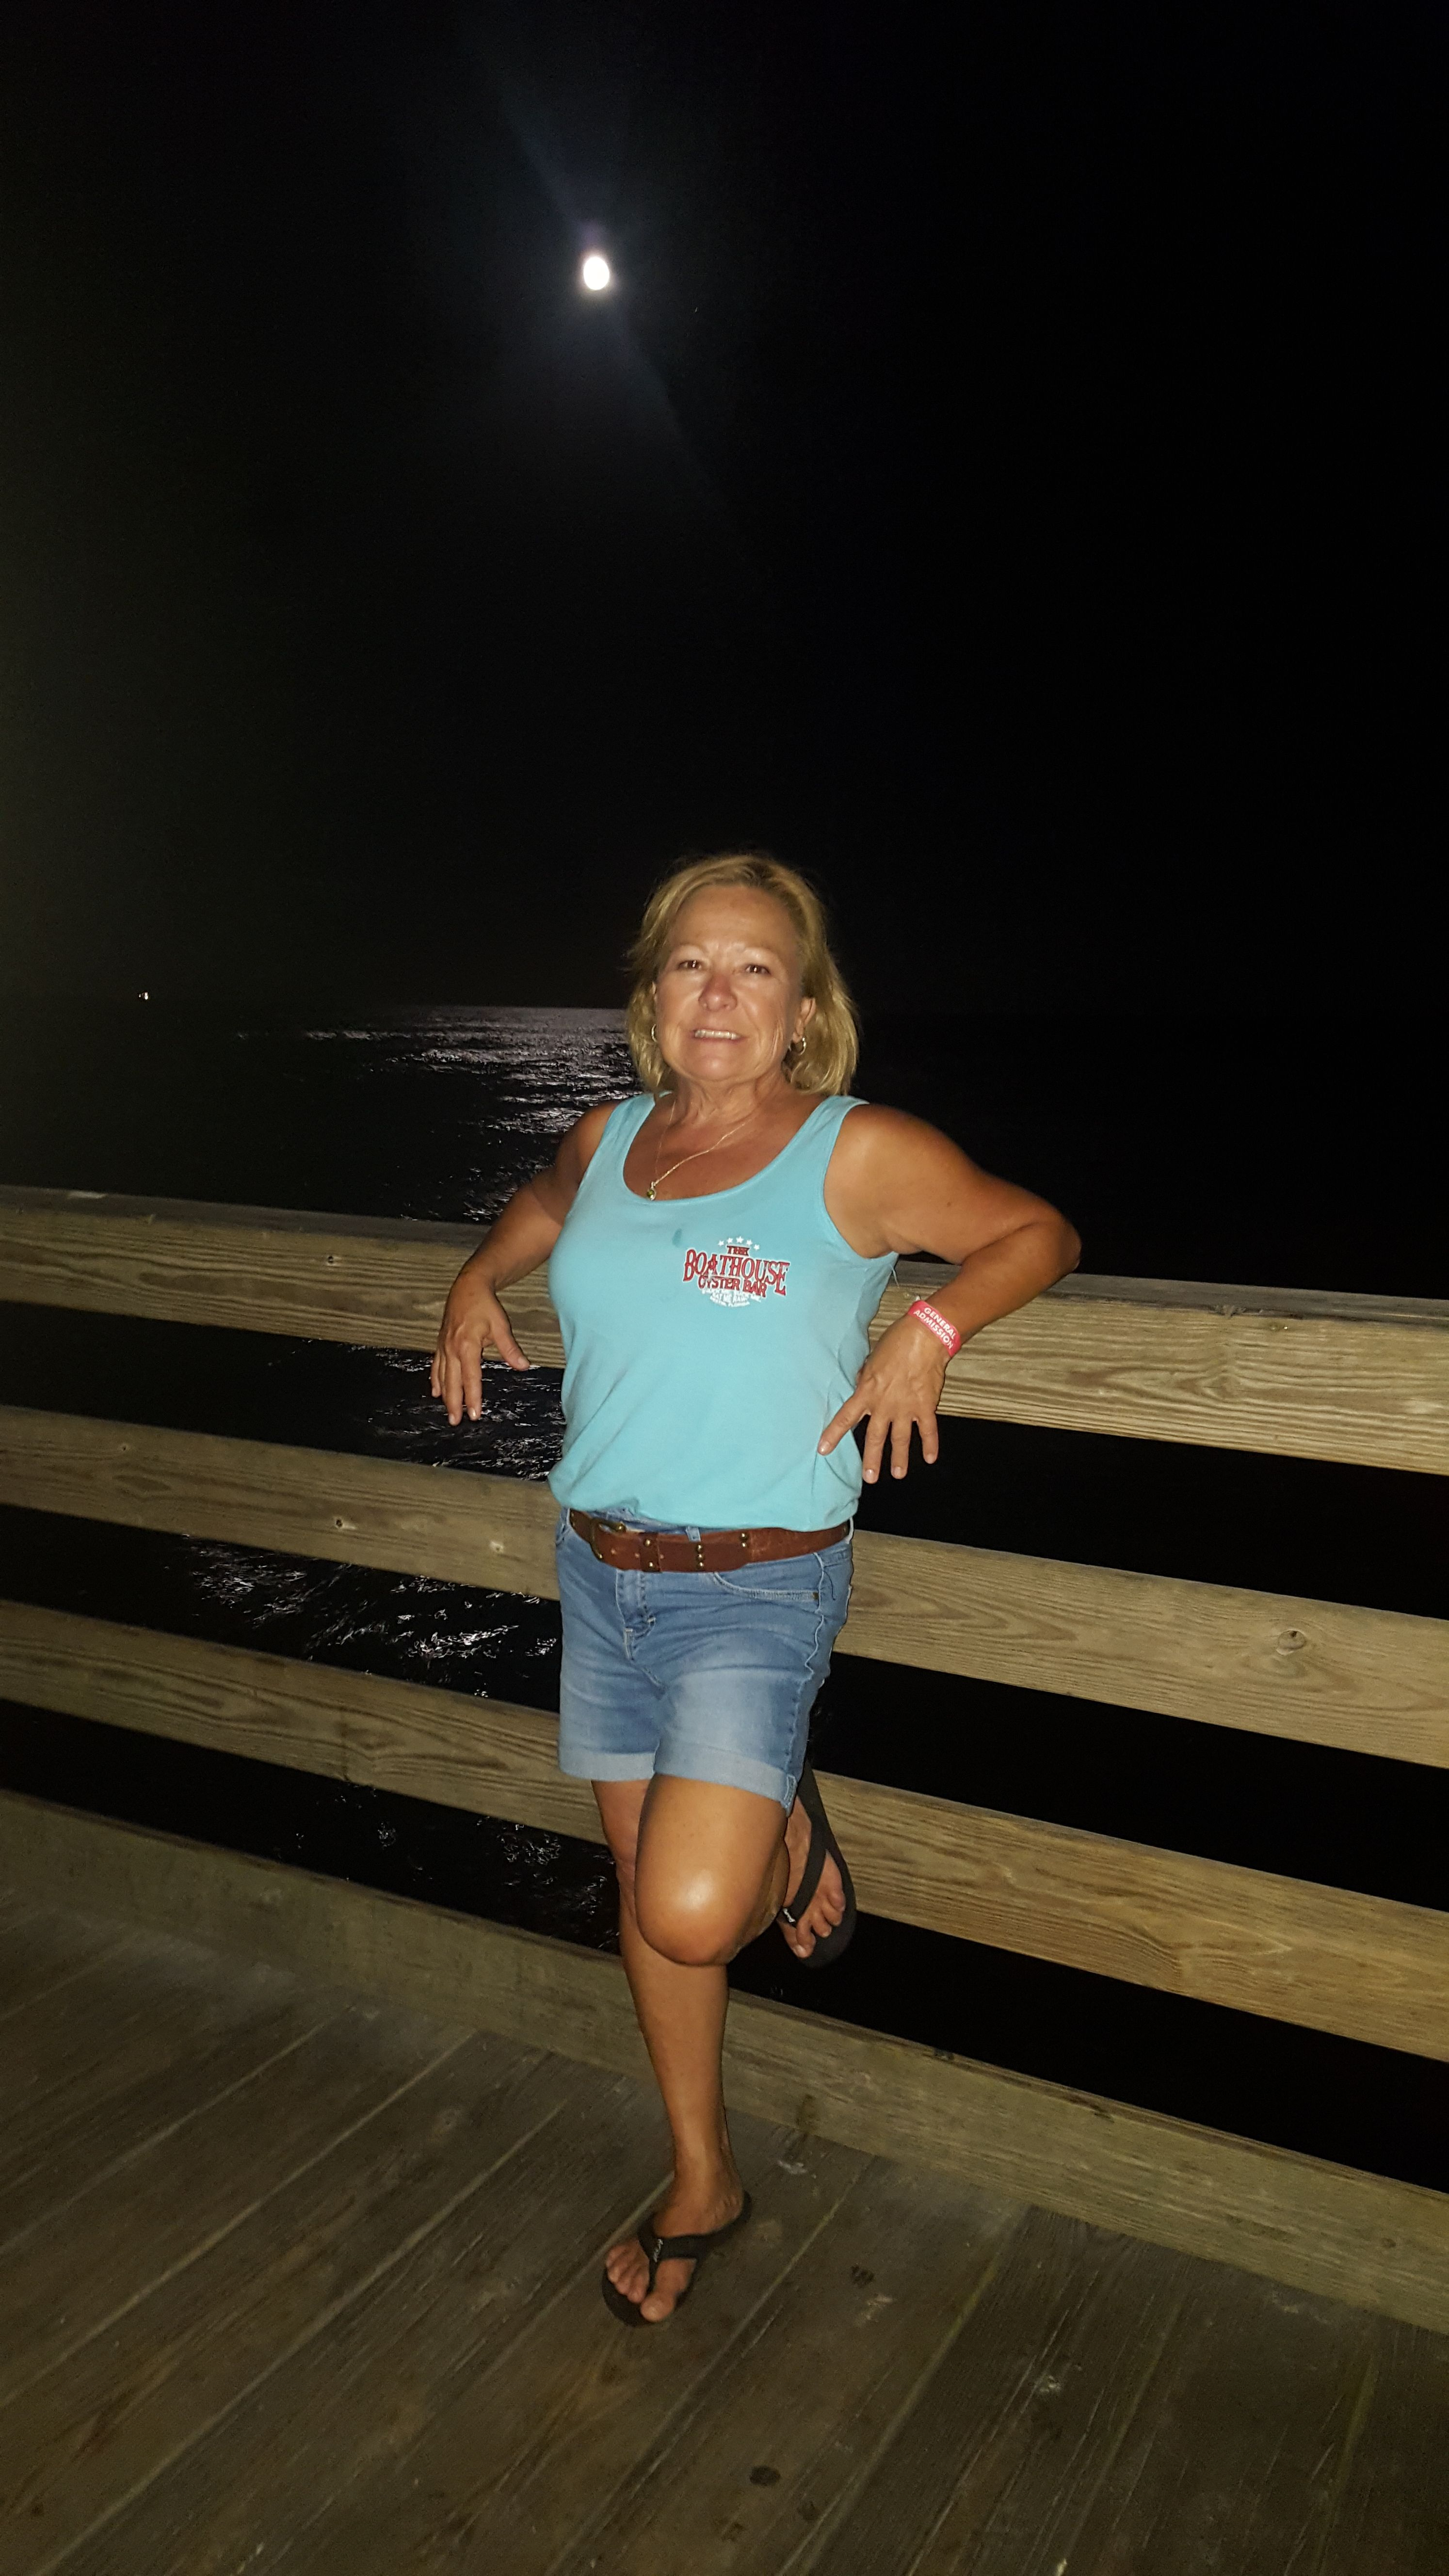 north star mature singles 64, sydney - lower north shore, nsw  singles links singles by city  professional singles mature dating seniors dating useful links.